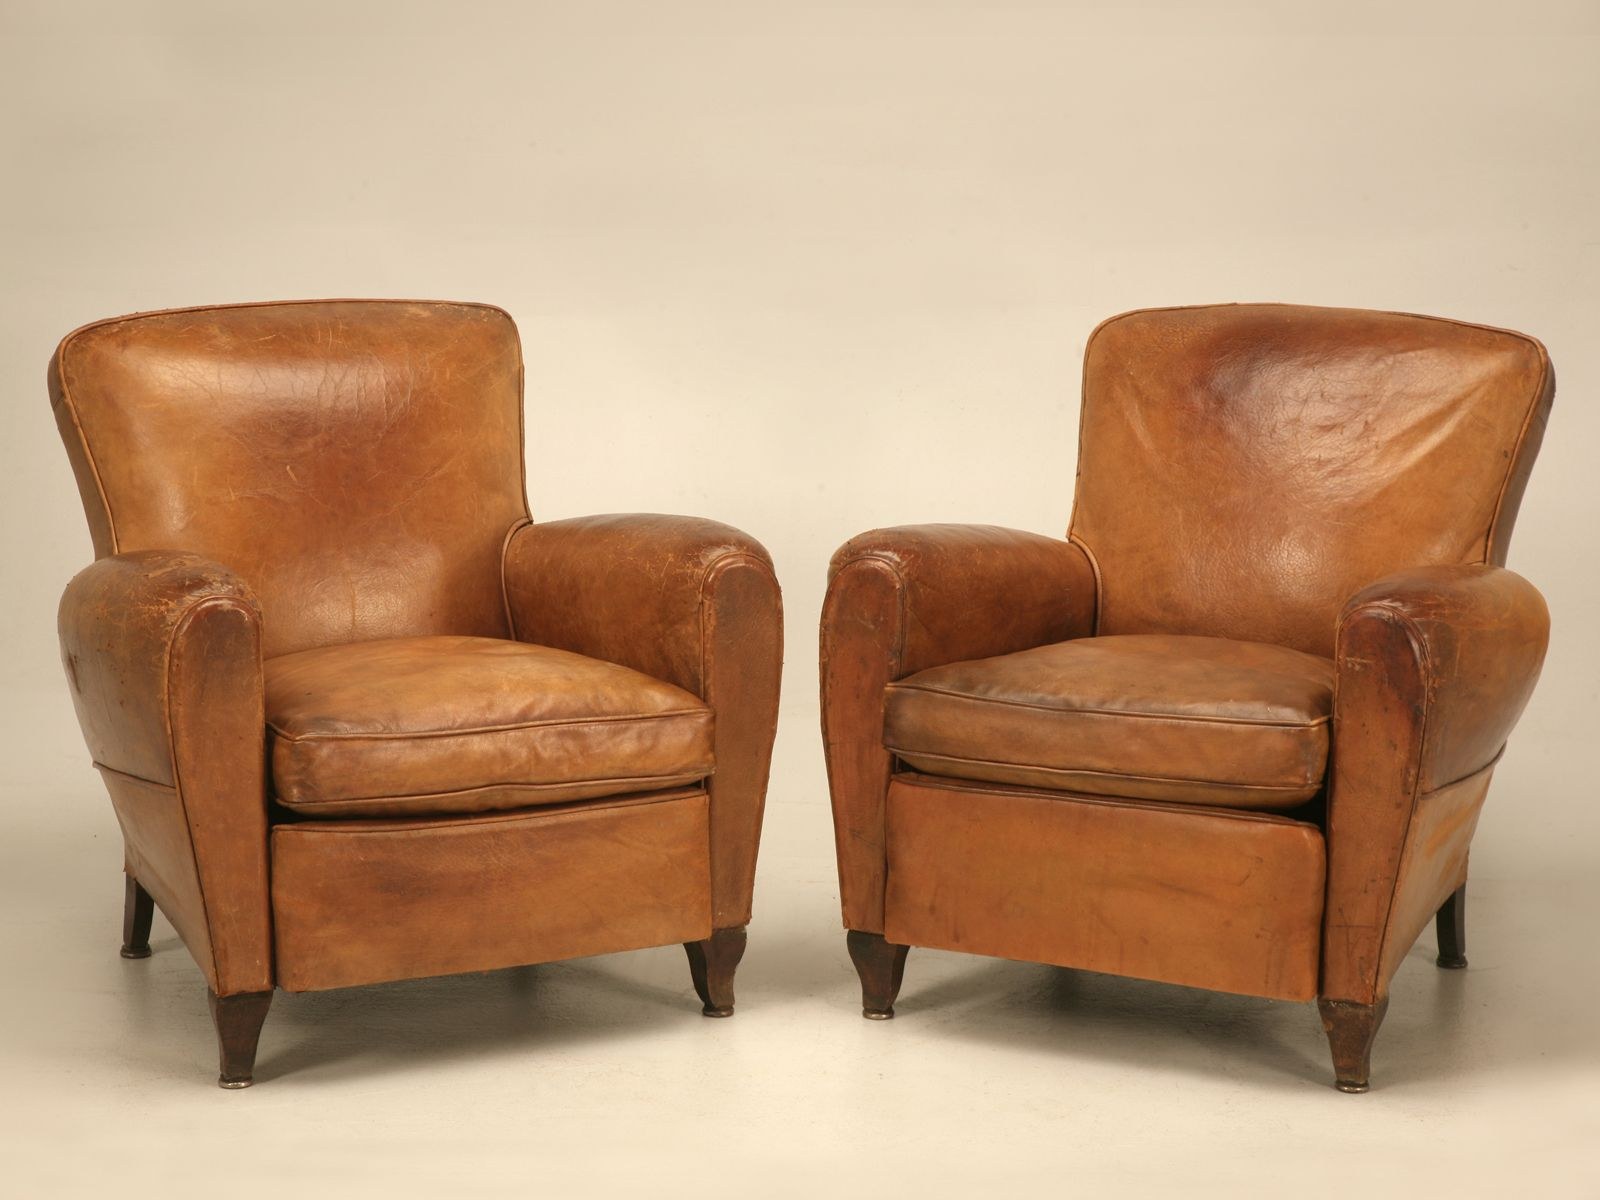 Handsome Pair Of Original Vintage French Leather Club Chairs Club Chairs Leather Club Chairs Small Leather Club Chair Leather club chairs for sale